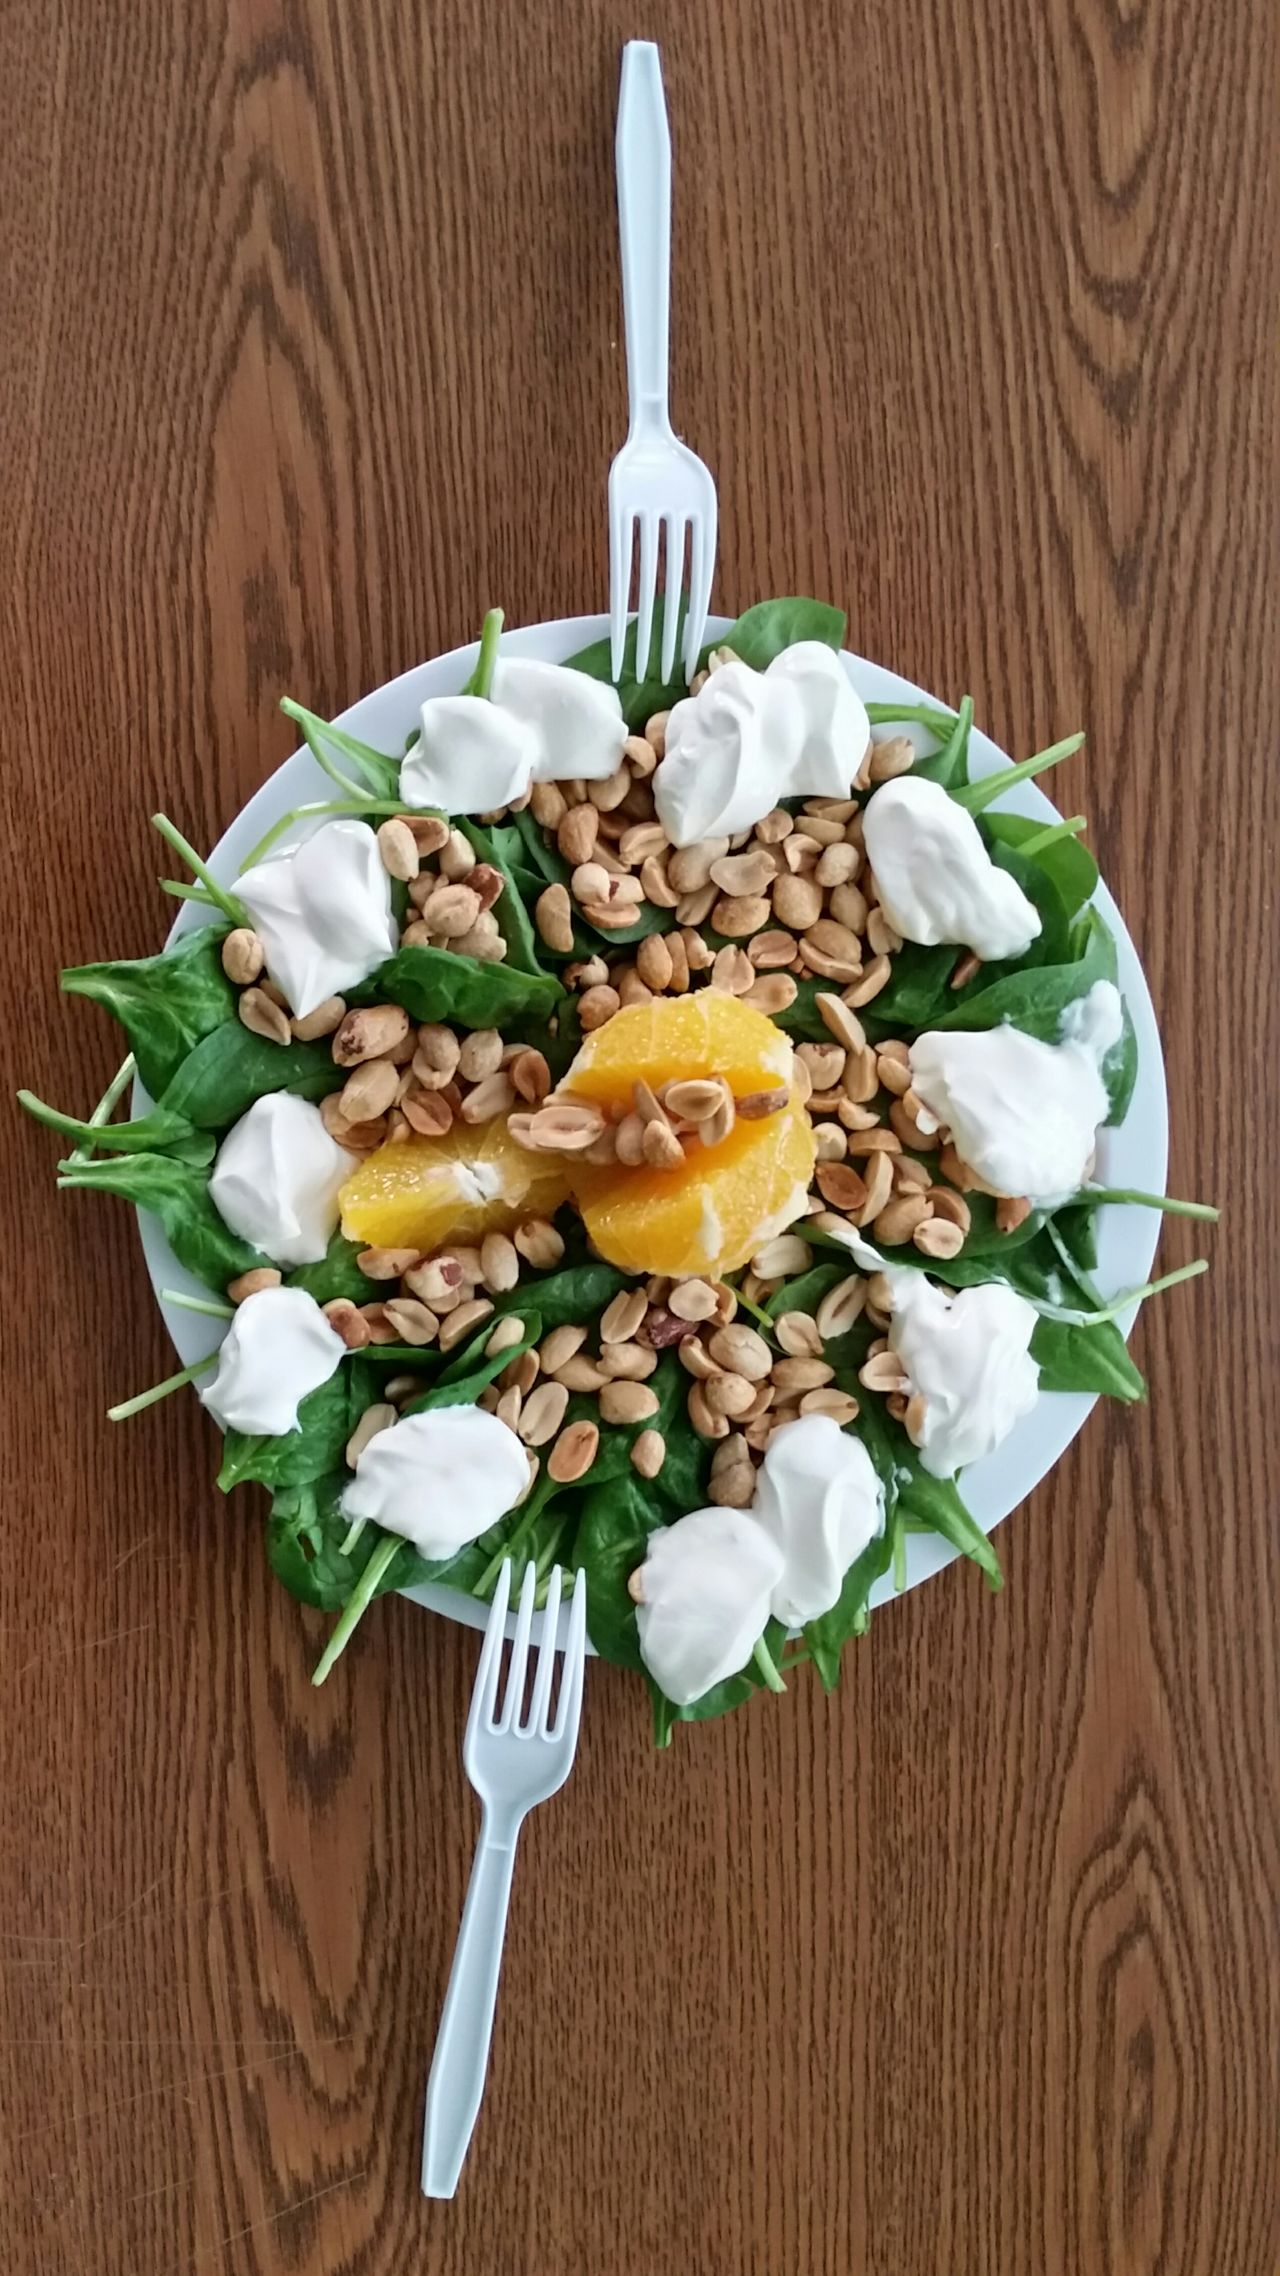 ShareTheMeal Vertical Wood - Material Freshness Food No People Close-up Indoors  Thank You My Friends 😊 Spinachsalad Spinachmy My Favorite Breakfast Moment Spinach Orange Juice Limon Peanuts Cream Having Fun Healthy Eating